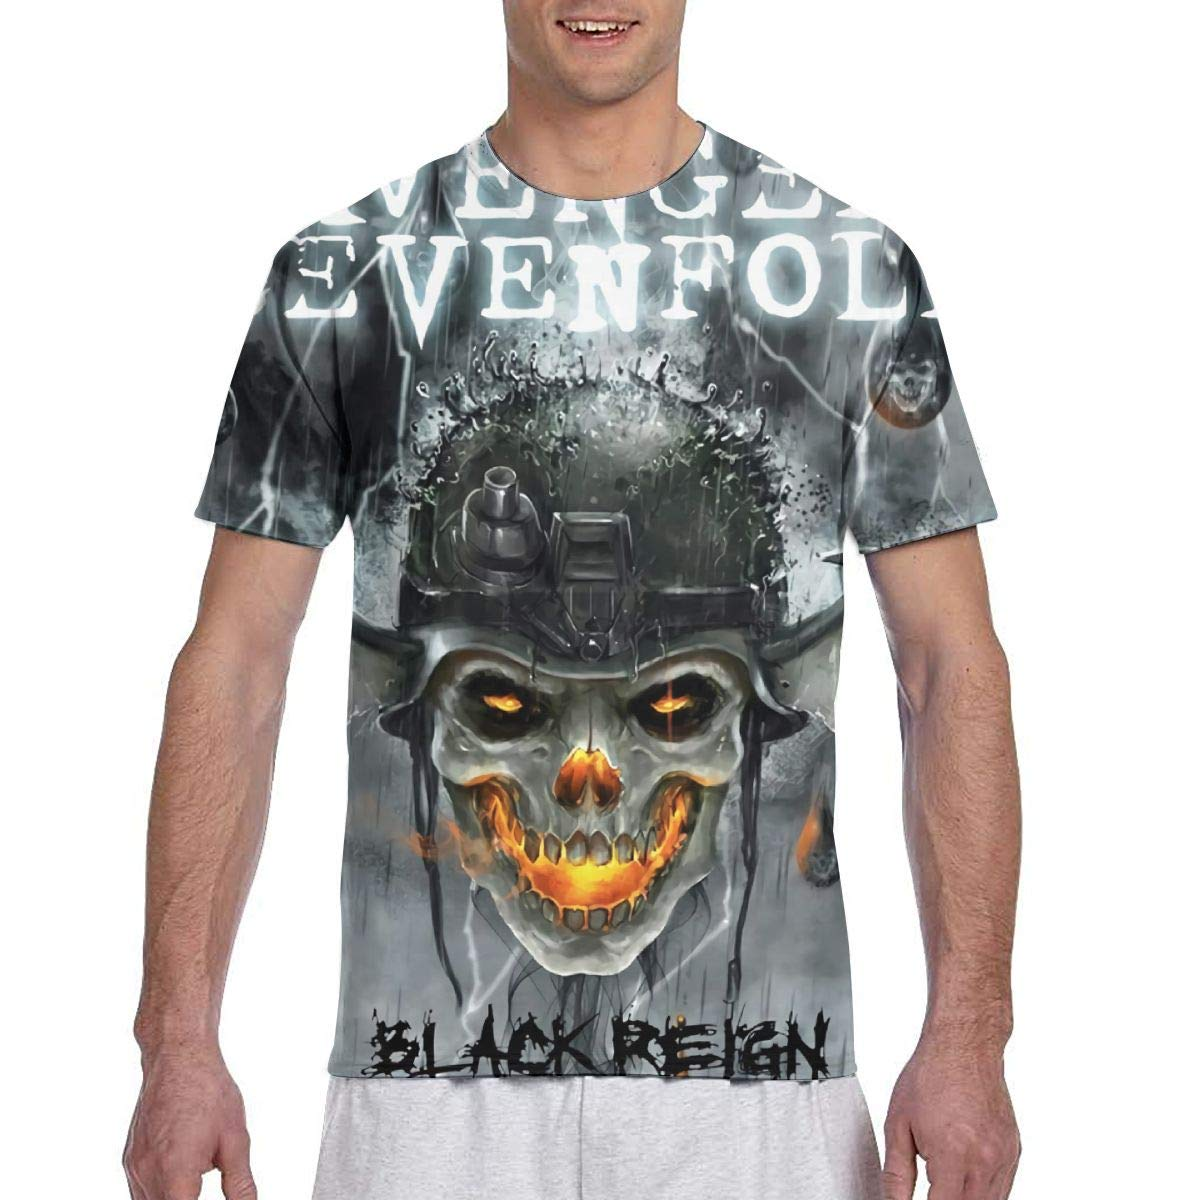 Men's Avenged Sevenfold Black Reign Custom Particular Short Sleeve T-Shirt